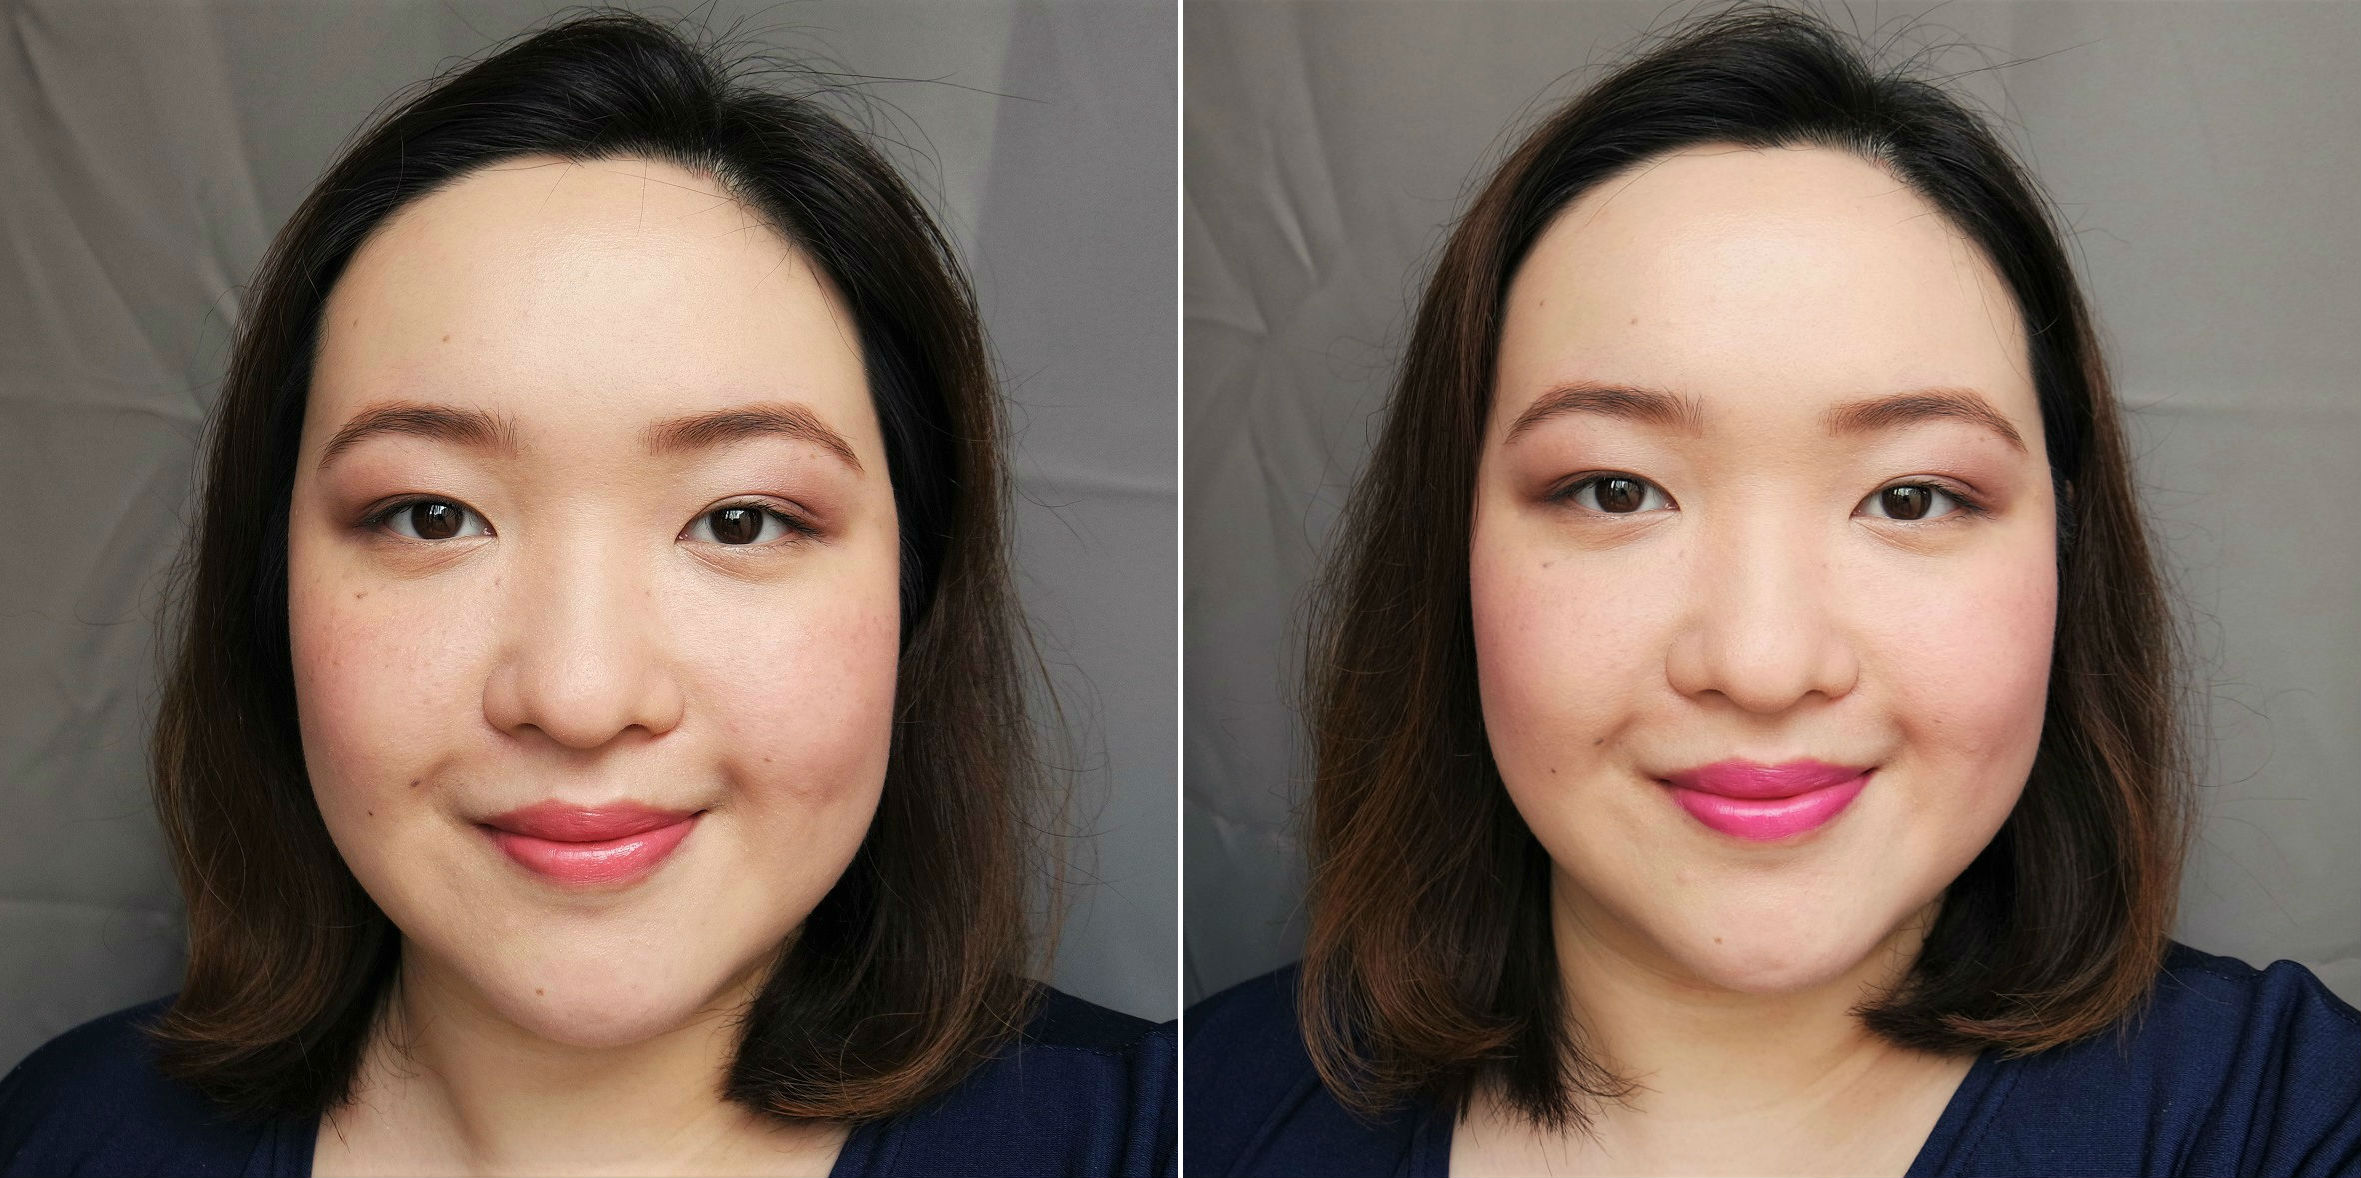 Wearing Photoready Matte Primer, CC Micro-Hydrating Powder, Eyebrow Defining Kit, Moisturizing Lip and Cheek Duo in Rosy Blush on cheeks and lips (left), and Soft Berry on cheeks and lips (right)